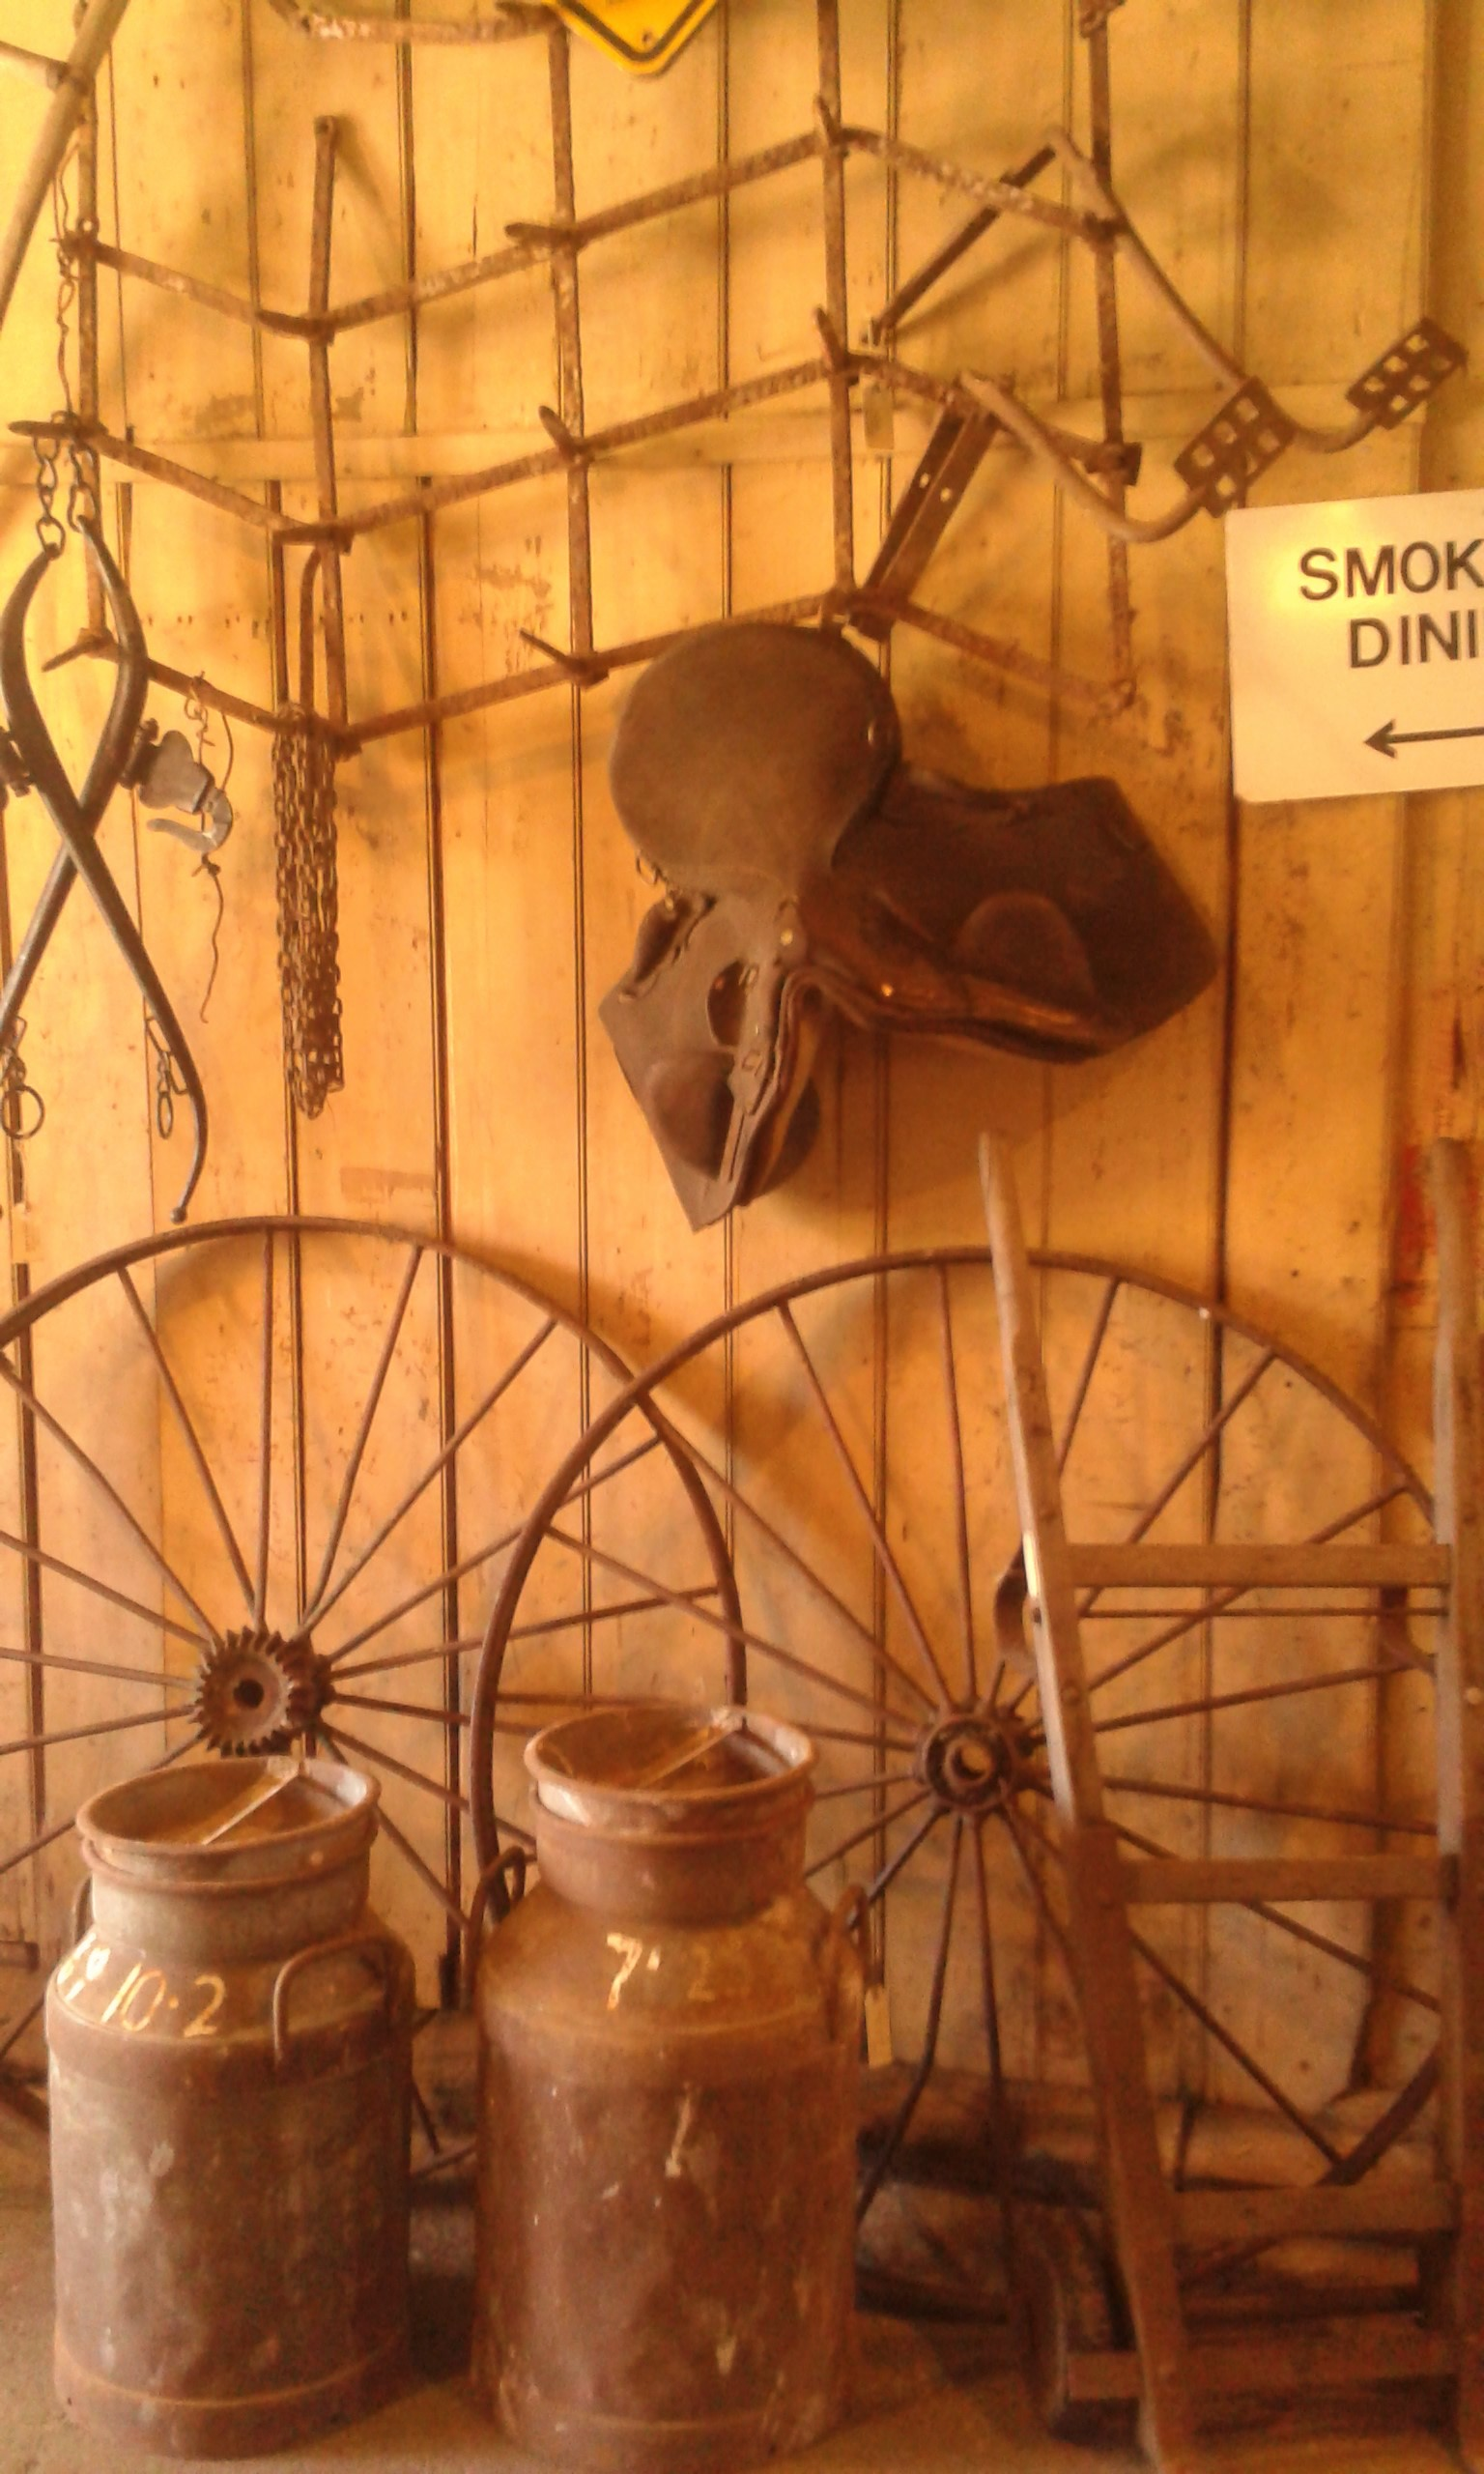 Countryfinds : C.1940's cream cans, steel waggon wheels, horse haynes , rustic chains and a cool sack barrow.